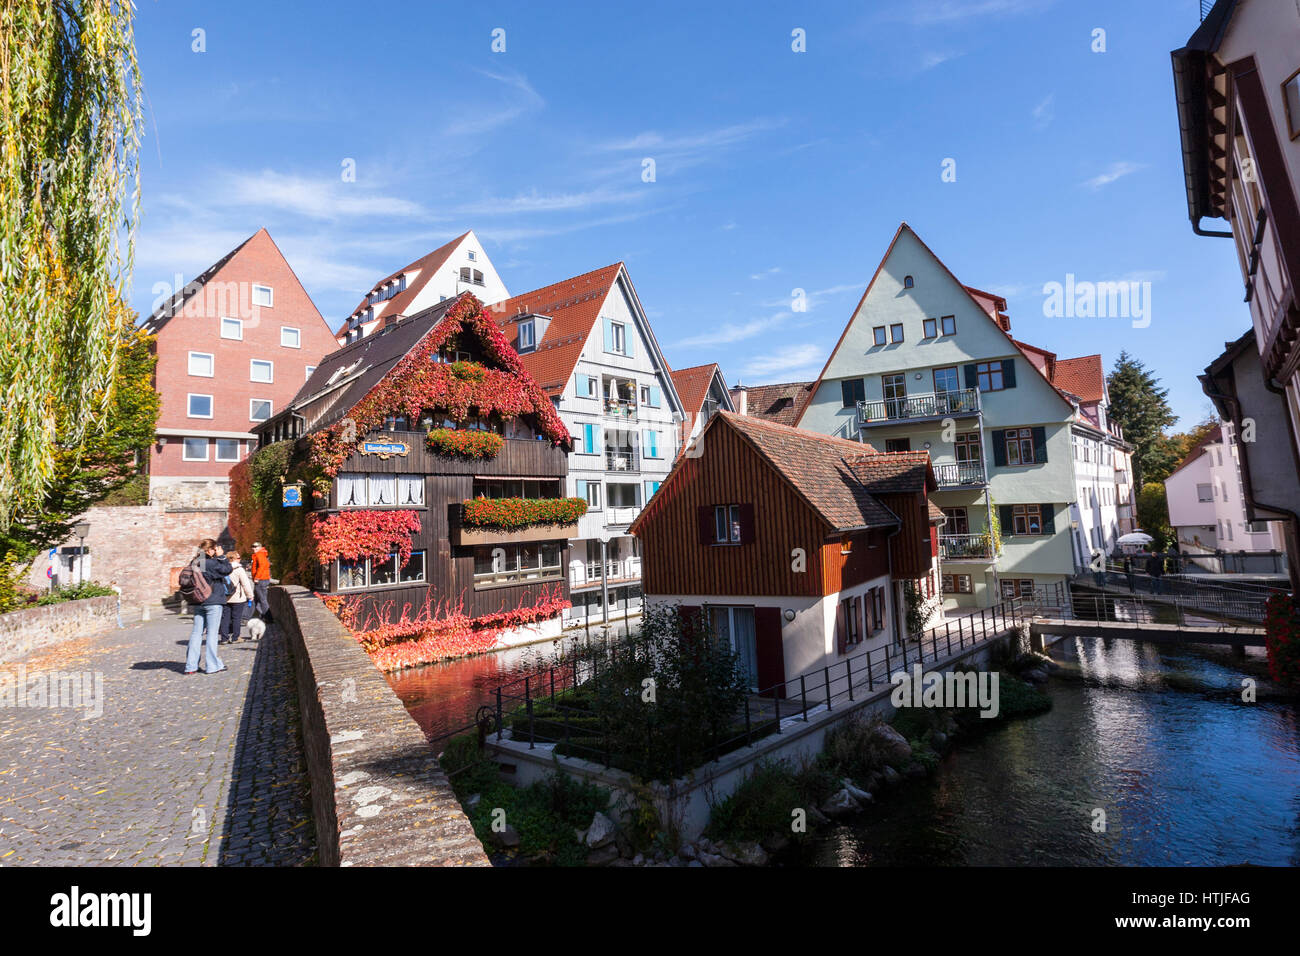 River Blau in Fischerviertel, The Fishermen's and Tanners' quarter in Ulm, Baden-Württemberg, Germany - Stock Image